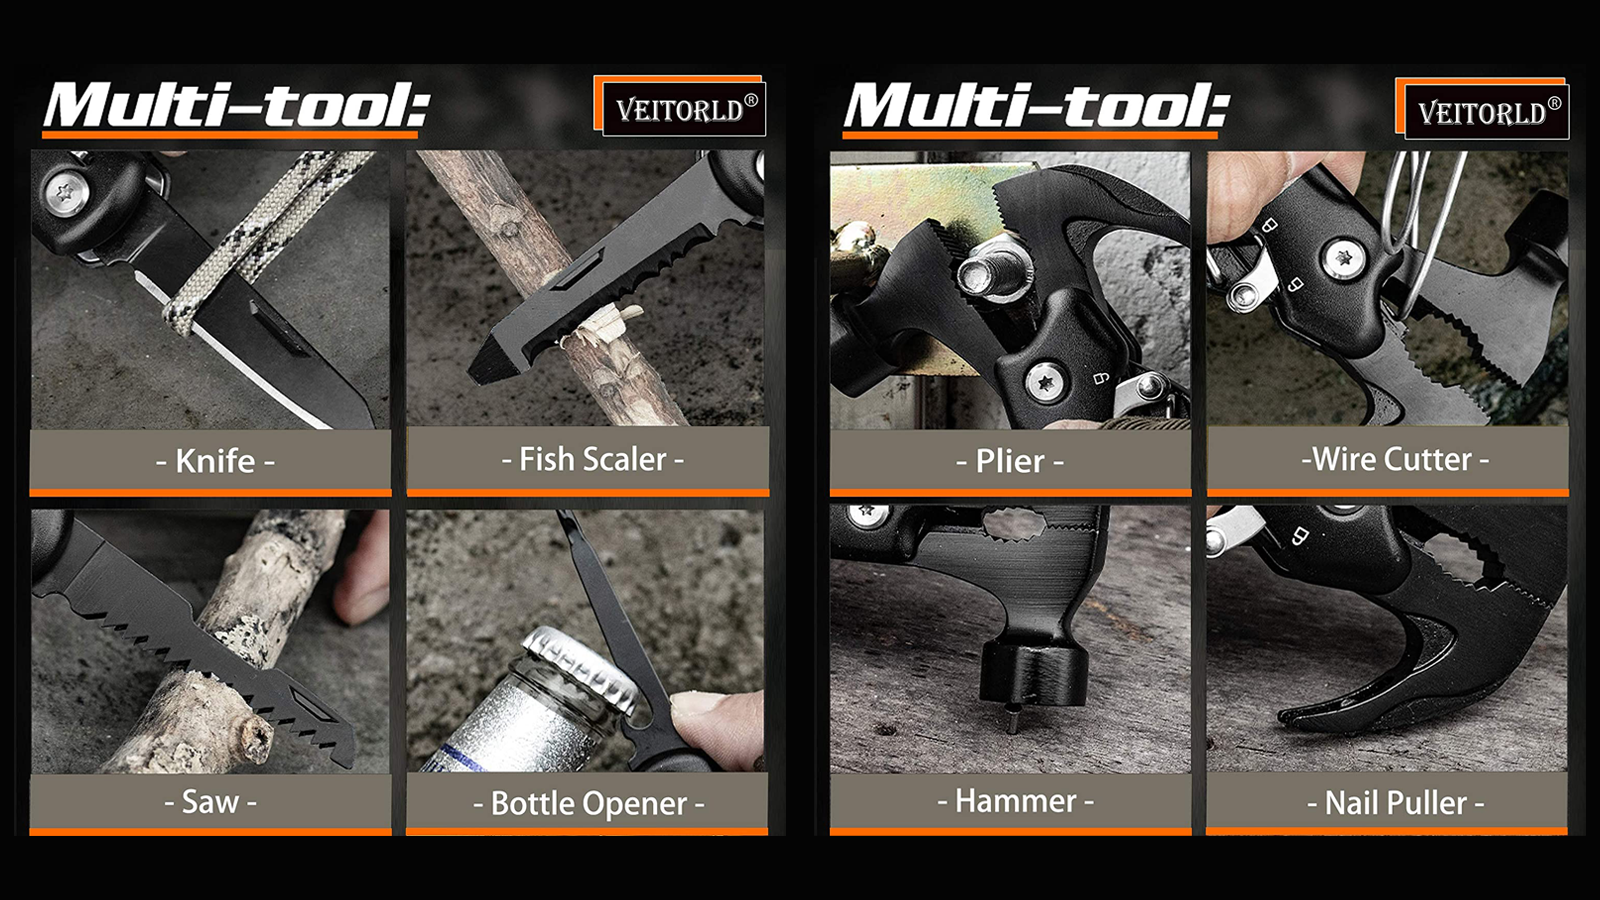 You'll Be Prepared for Projects and Repairs with This All-in-One Multitool